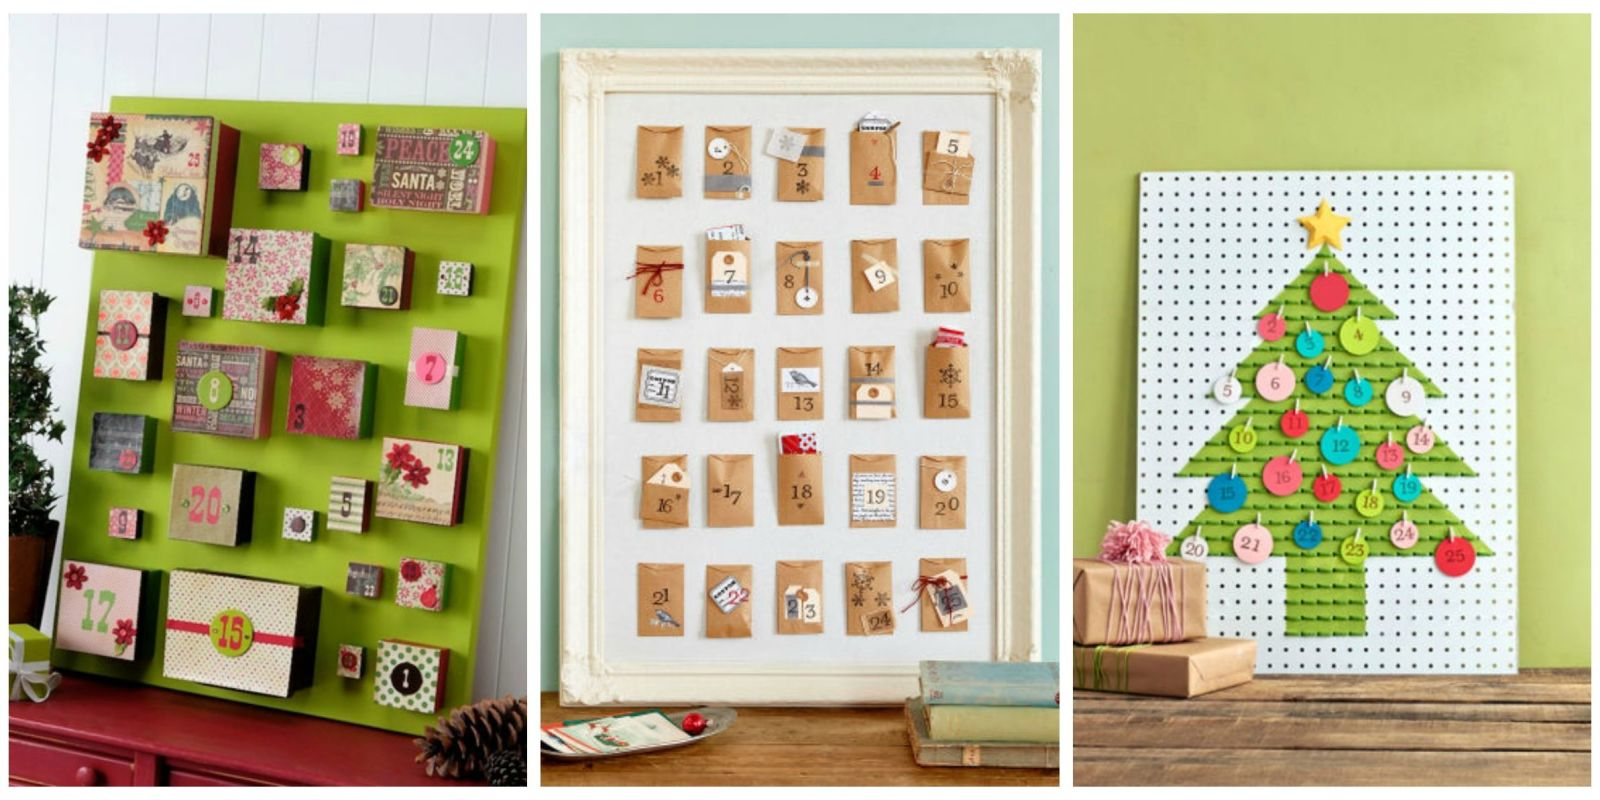 Calendar Ideas Diy : Diy advent calendar ideas homemade christmas